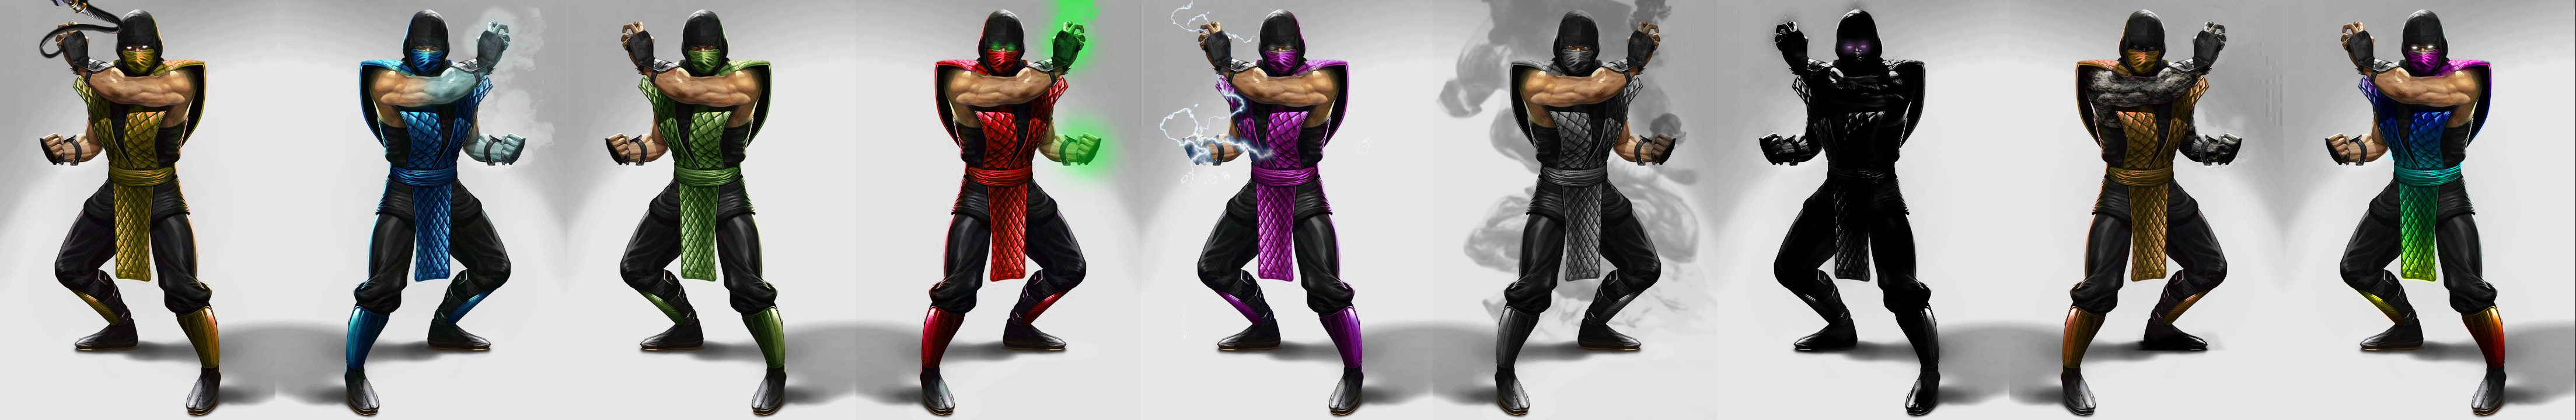 MORTAL KOMBAT 9 - ALL NINJAS&#39- X-Rays, Fatalities and Babalities ...